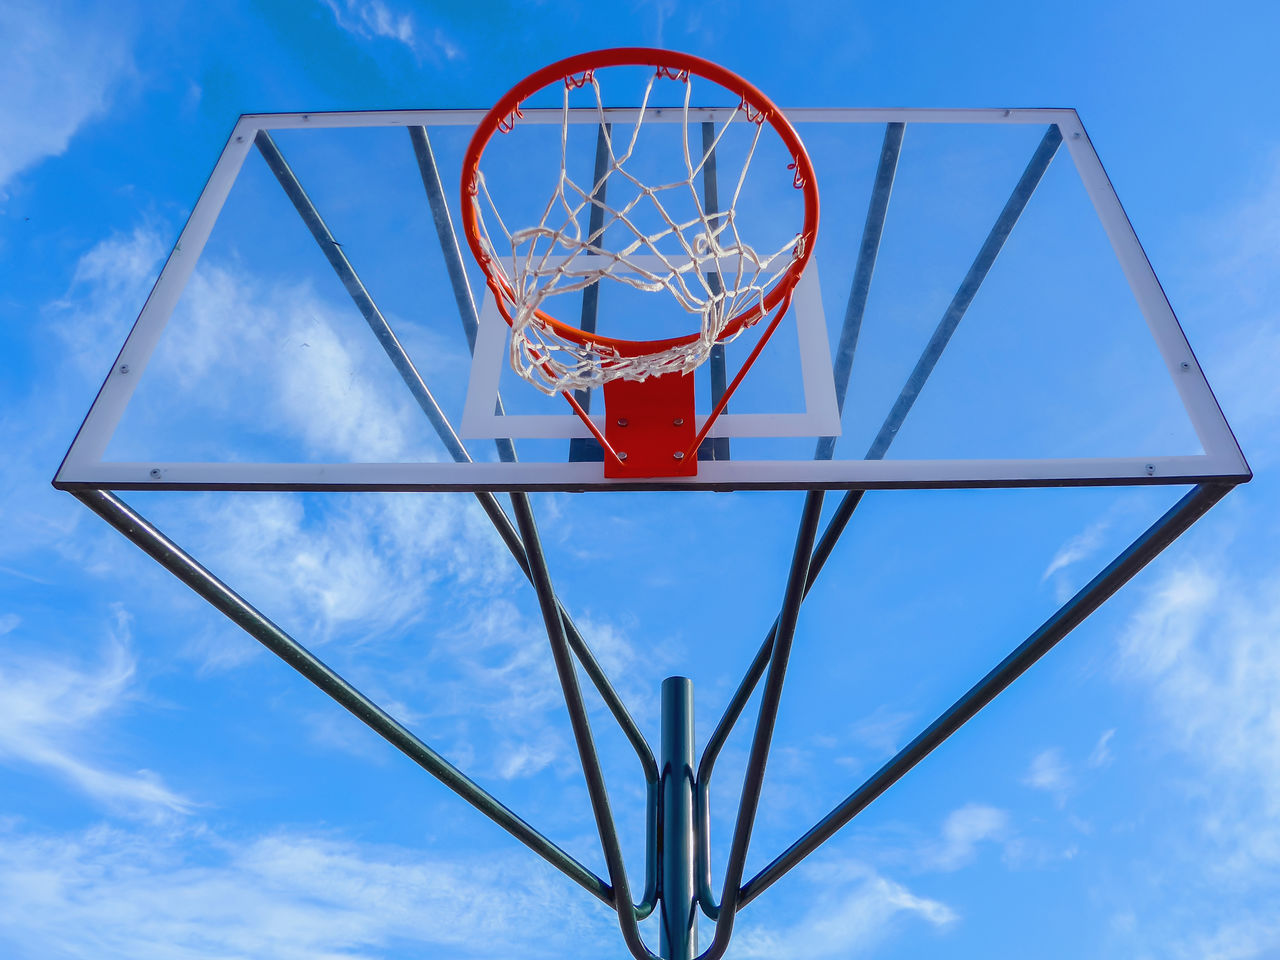 low angle view, sky, basketball hoop, basketball - sport, blue, cloud - sky, day, shape, net - sports equipment, nature, sport, geometric shape, no people, outdoors, circle, metal, design, red, sports equipment, directly below